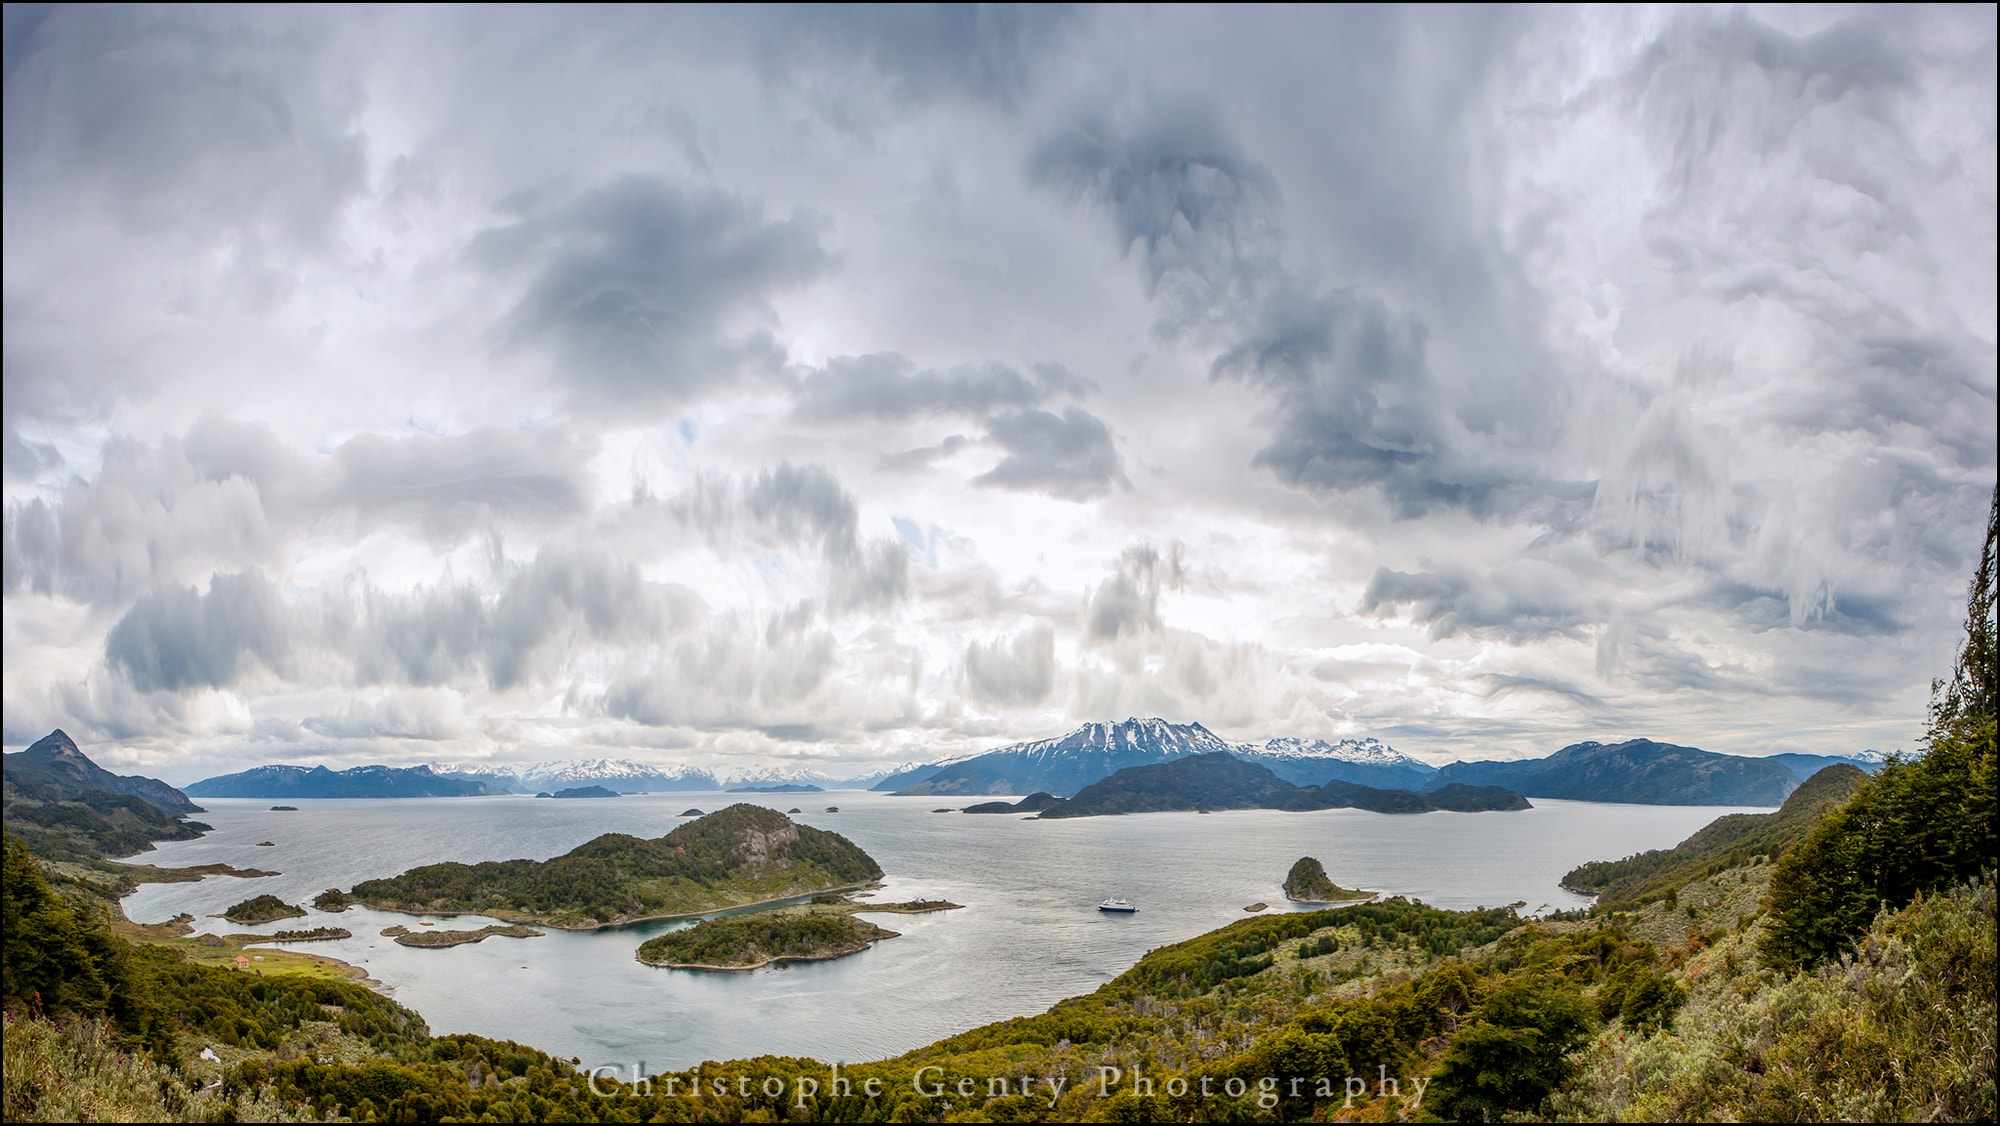 Bahía Wulaia, Murray Channel, Chile - Home of The Yaghan - December 2015